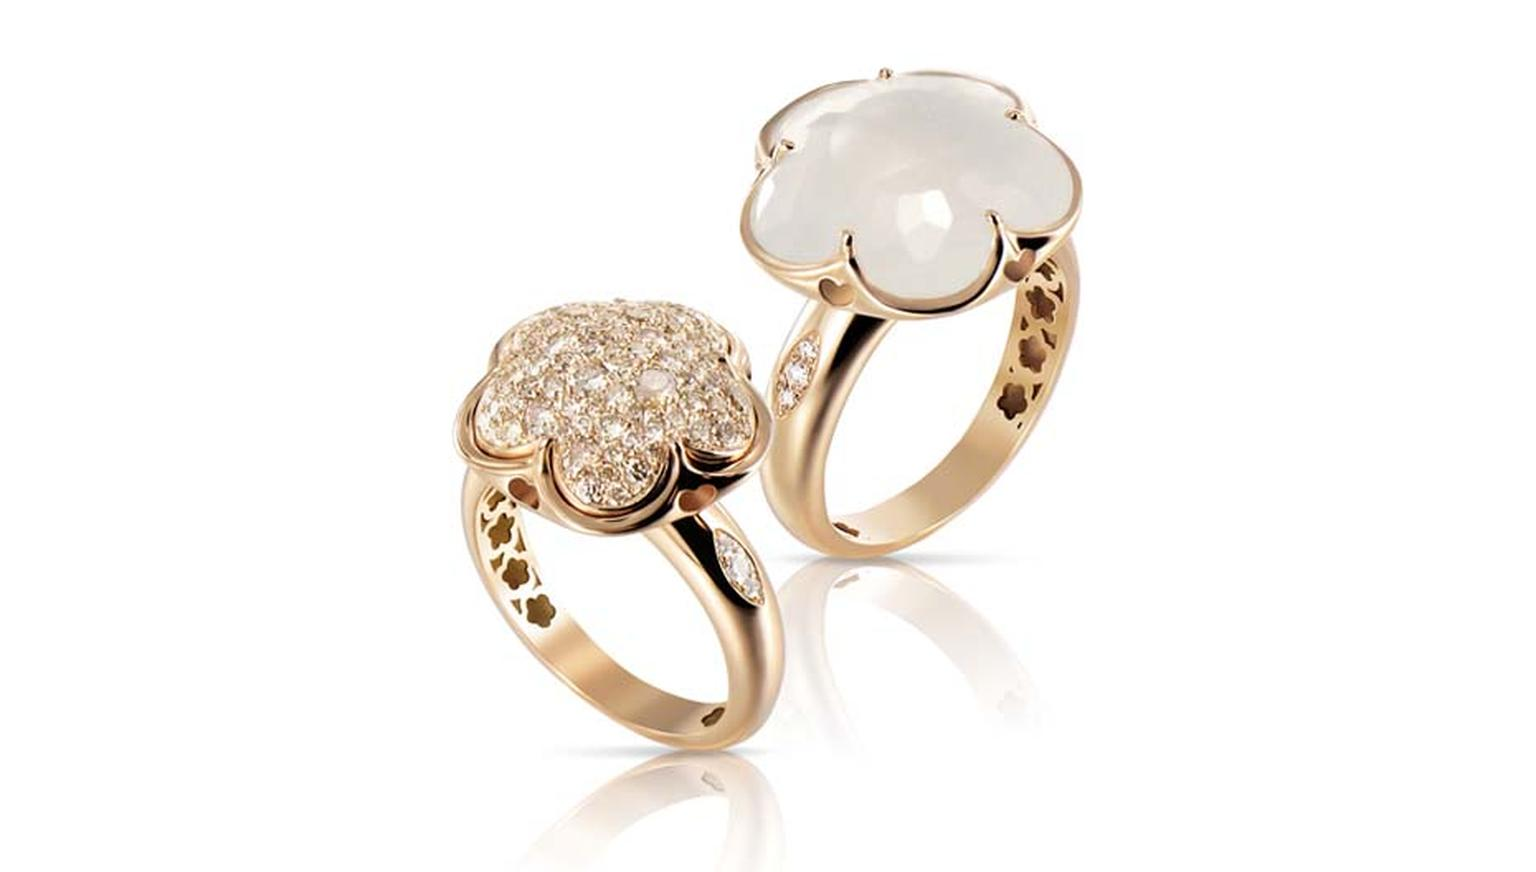 Pasquale Bruni Bon Ton rings with brown and white diamonds or milky white quartz with diamonds.